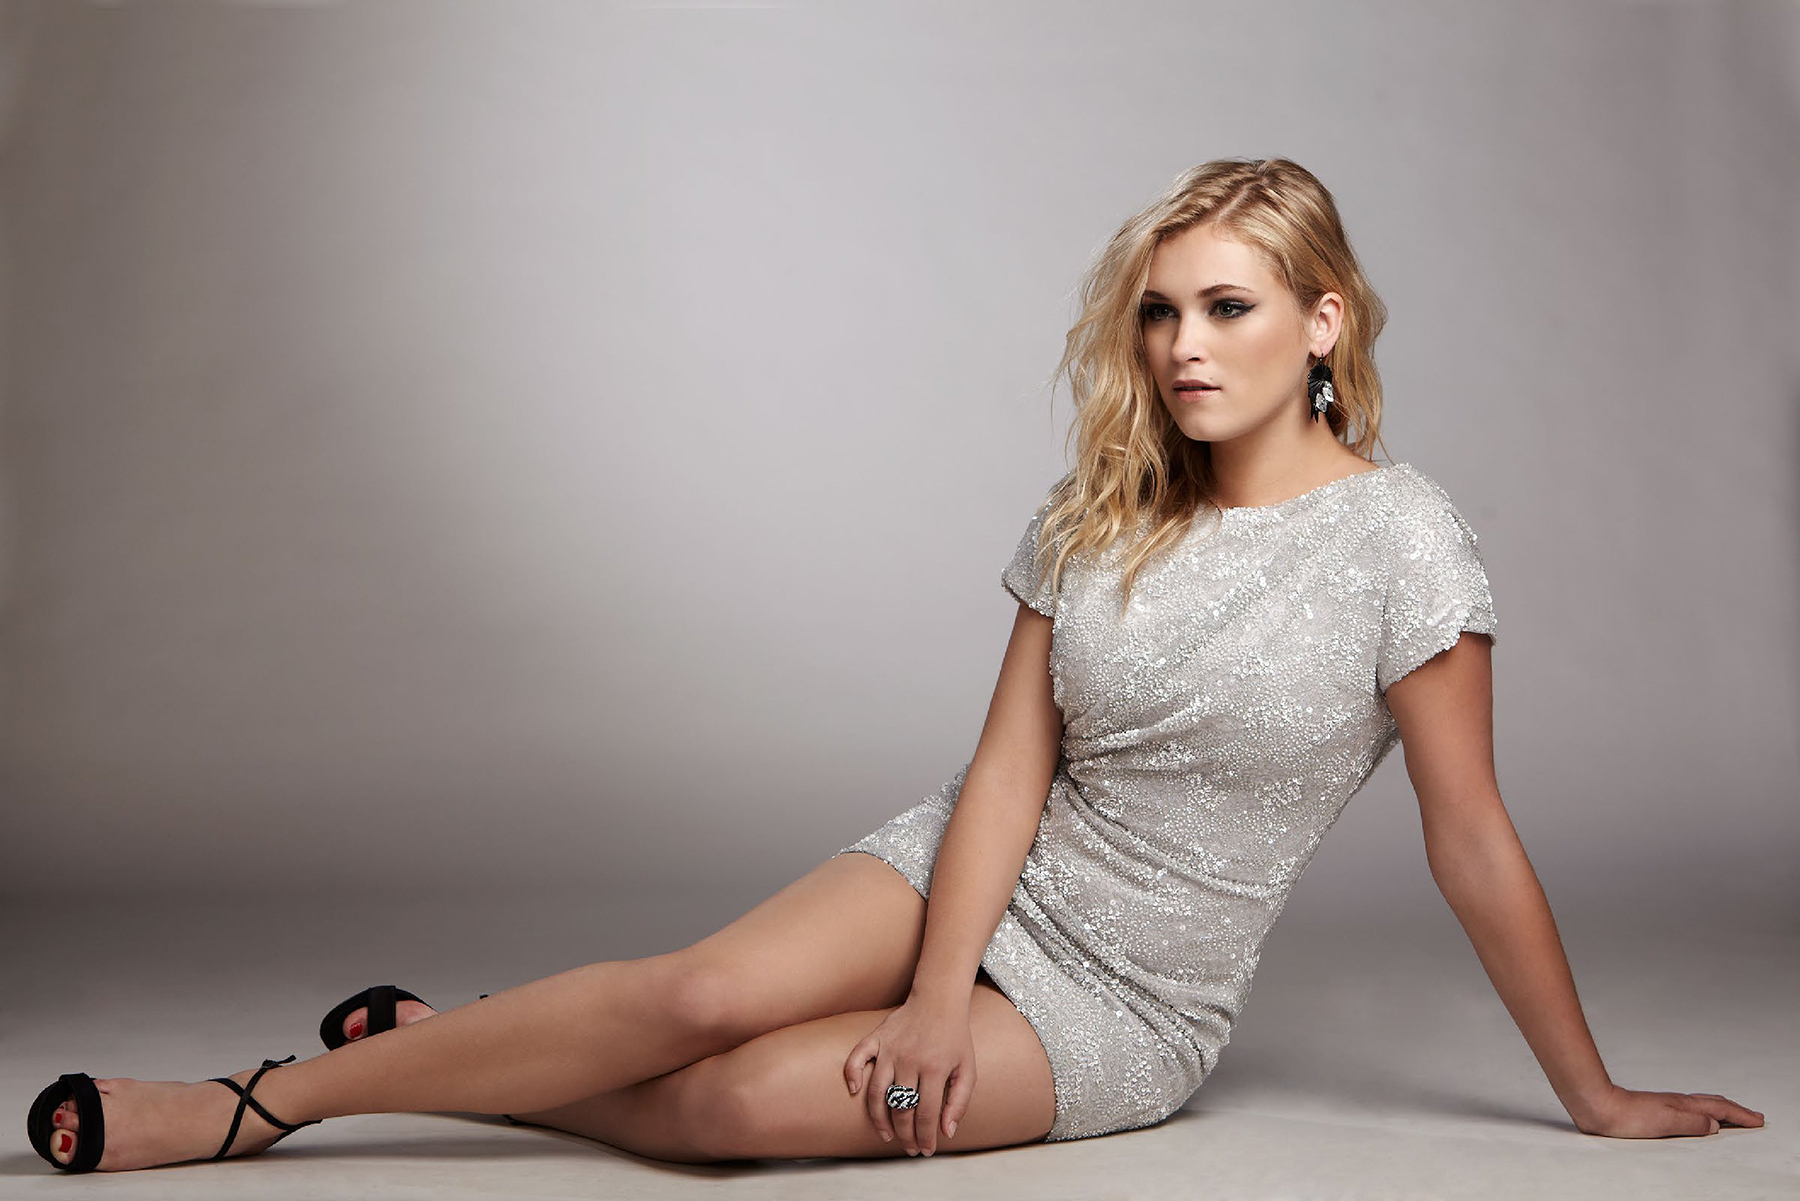 Eliza Taylor Hot Photos, Leaked Near-Nude Images